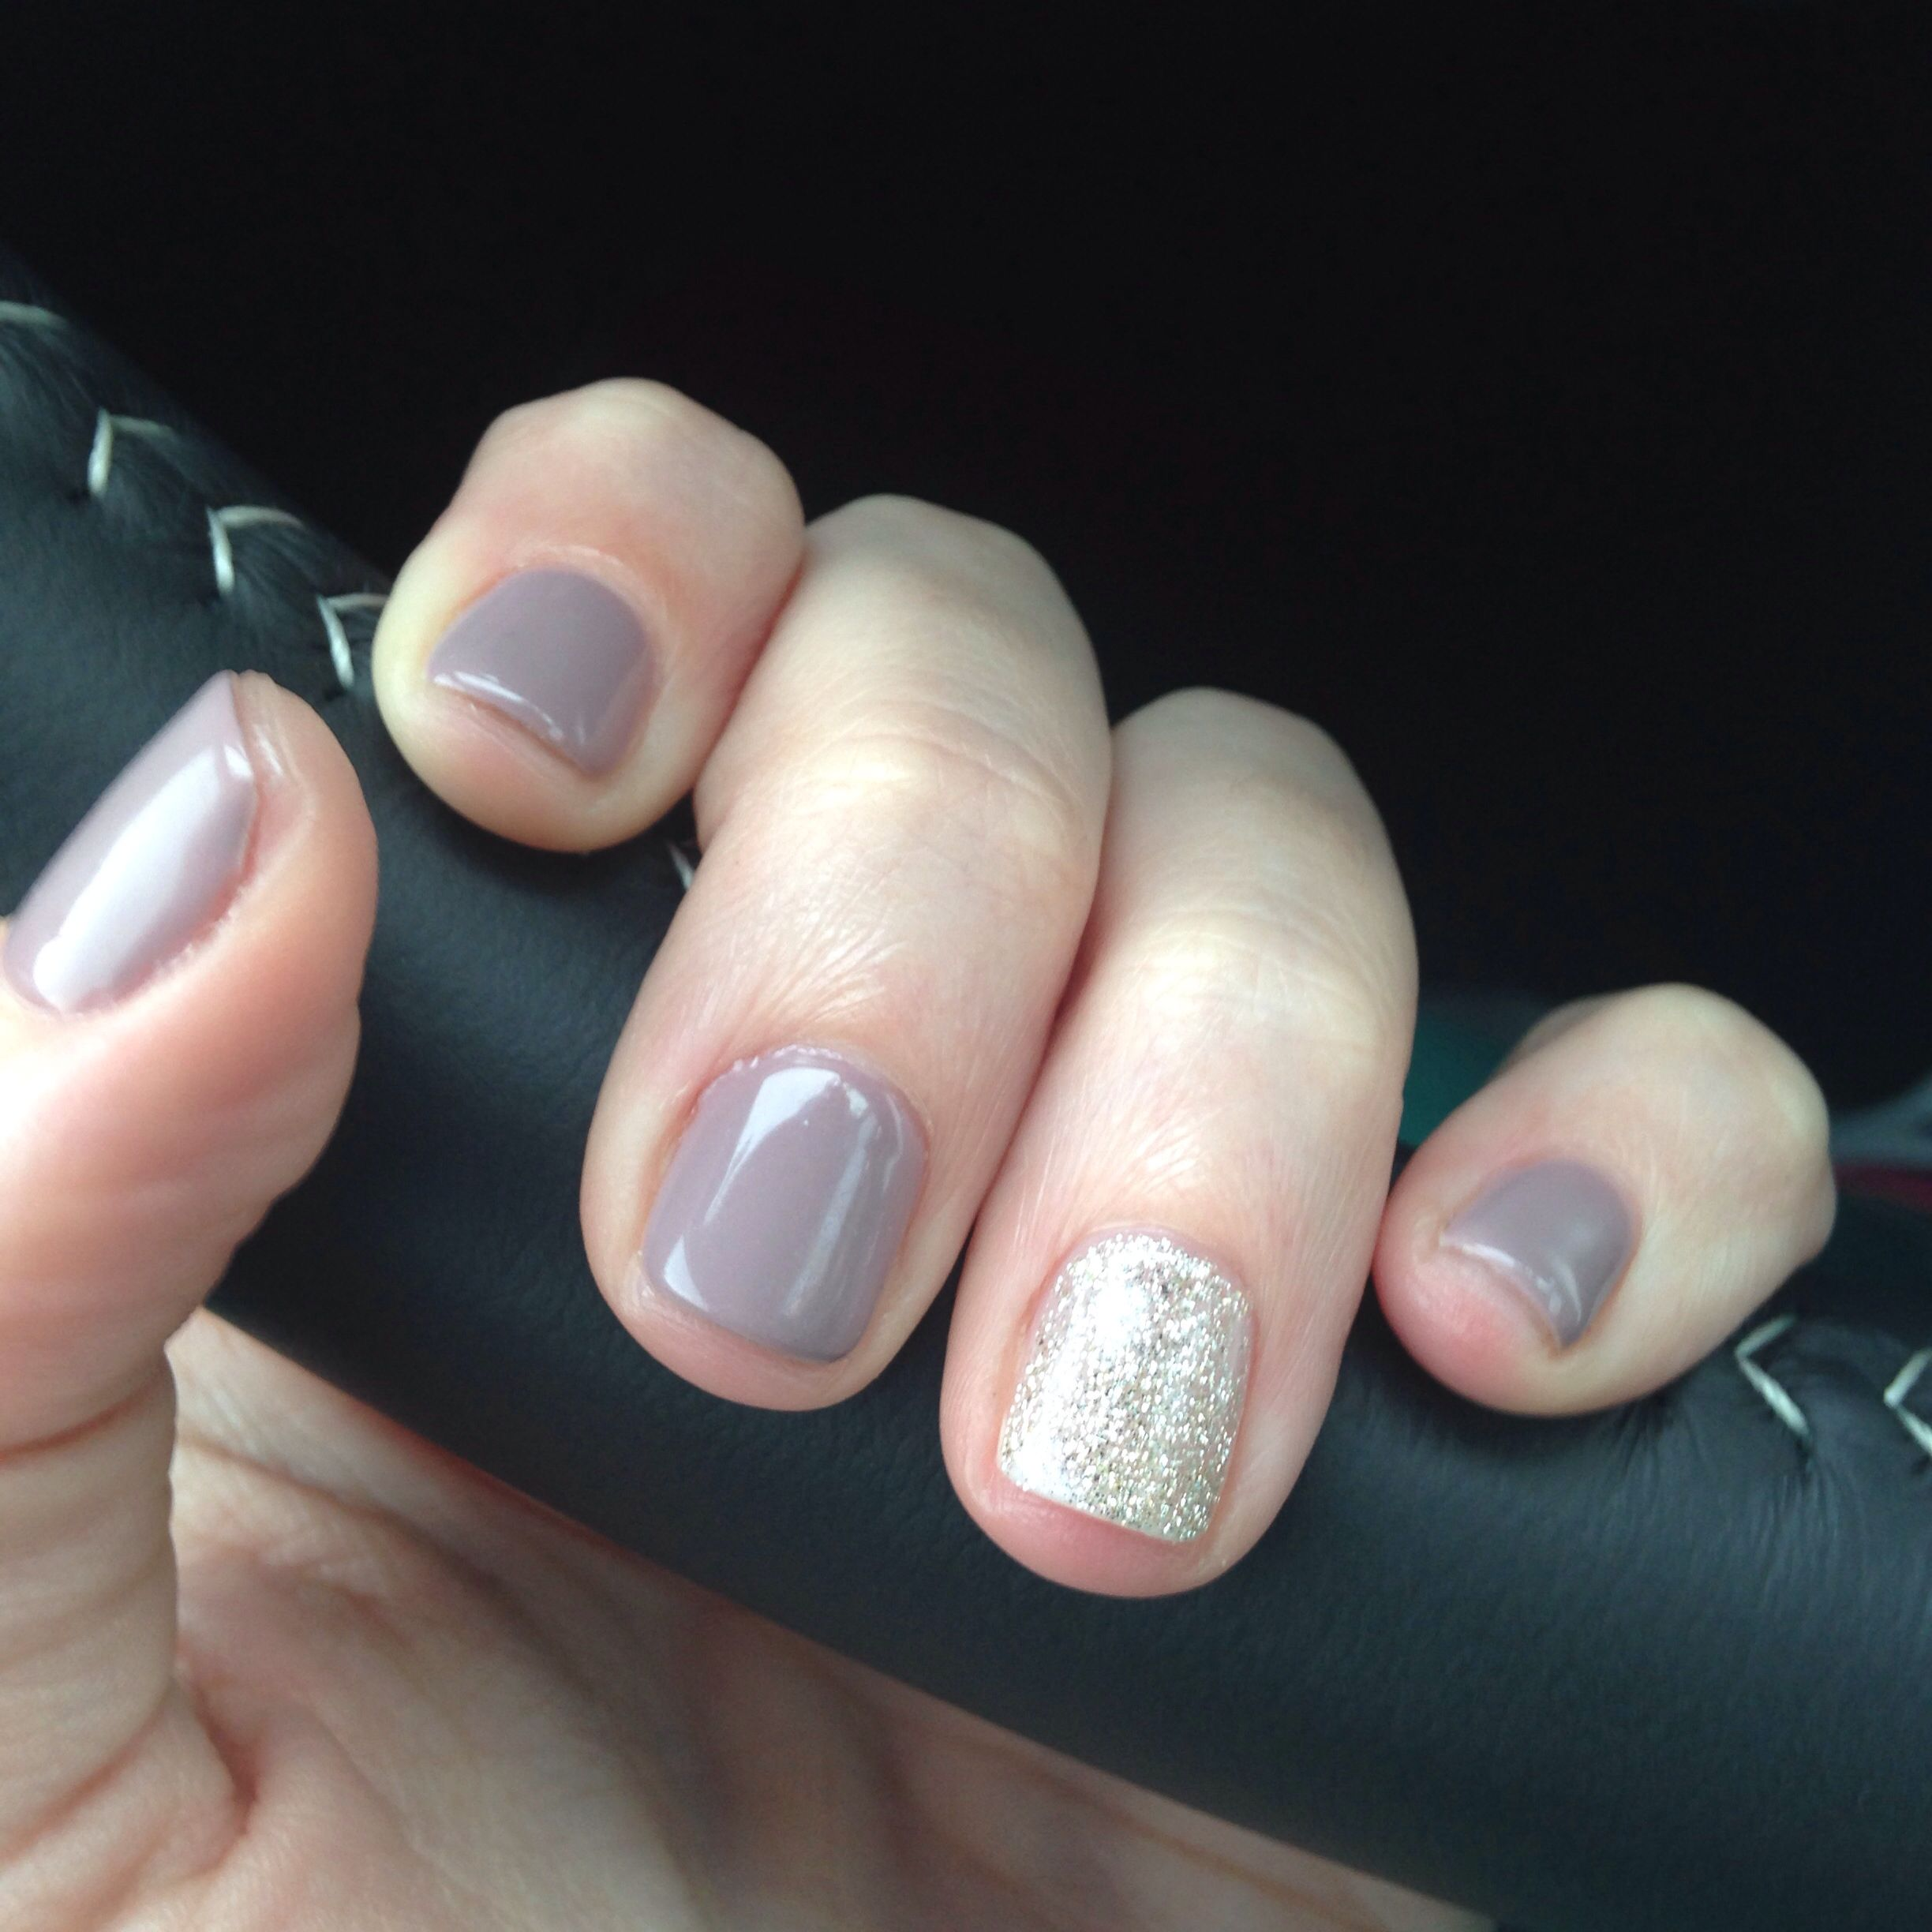 My Shellac Nails Women S Fashion That I Love Pinterest Shellac Nails Makeup And Hair Makeup